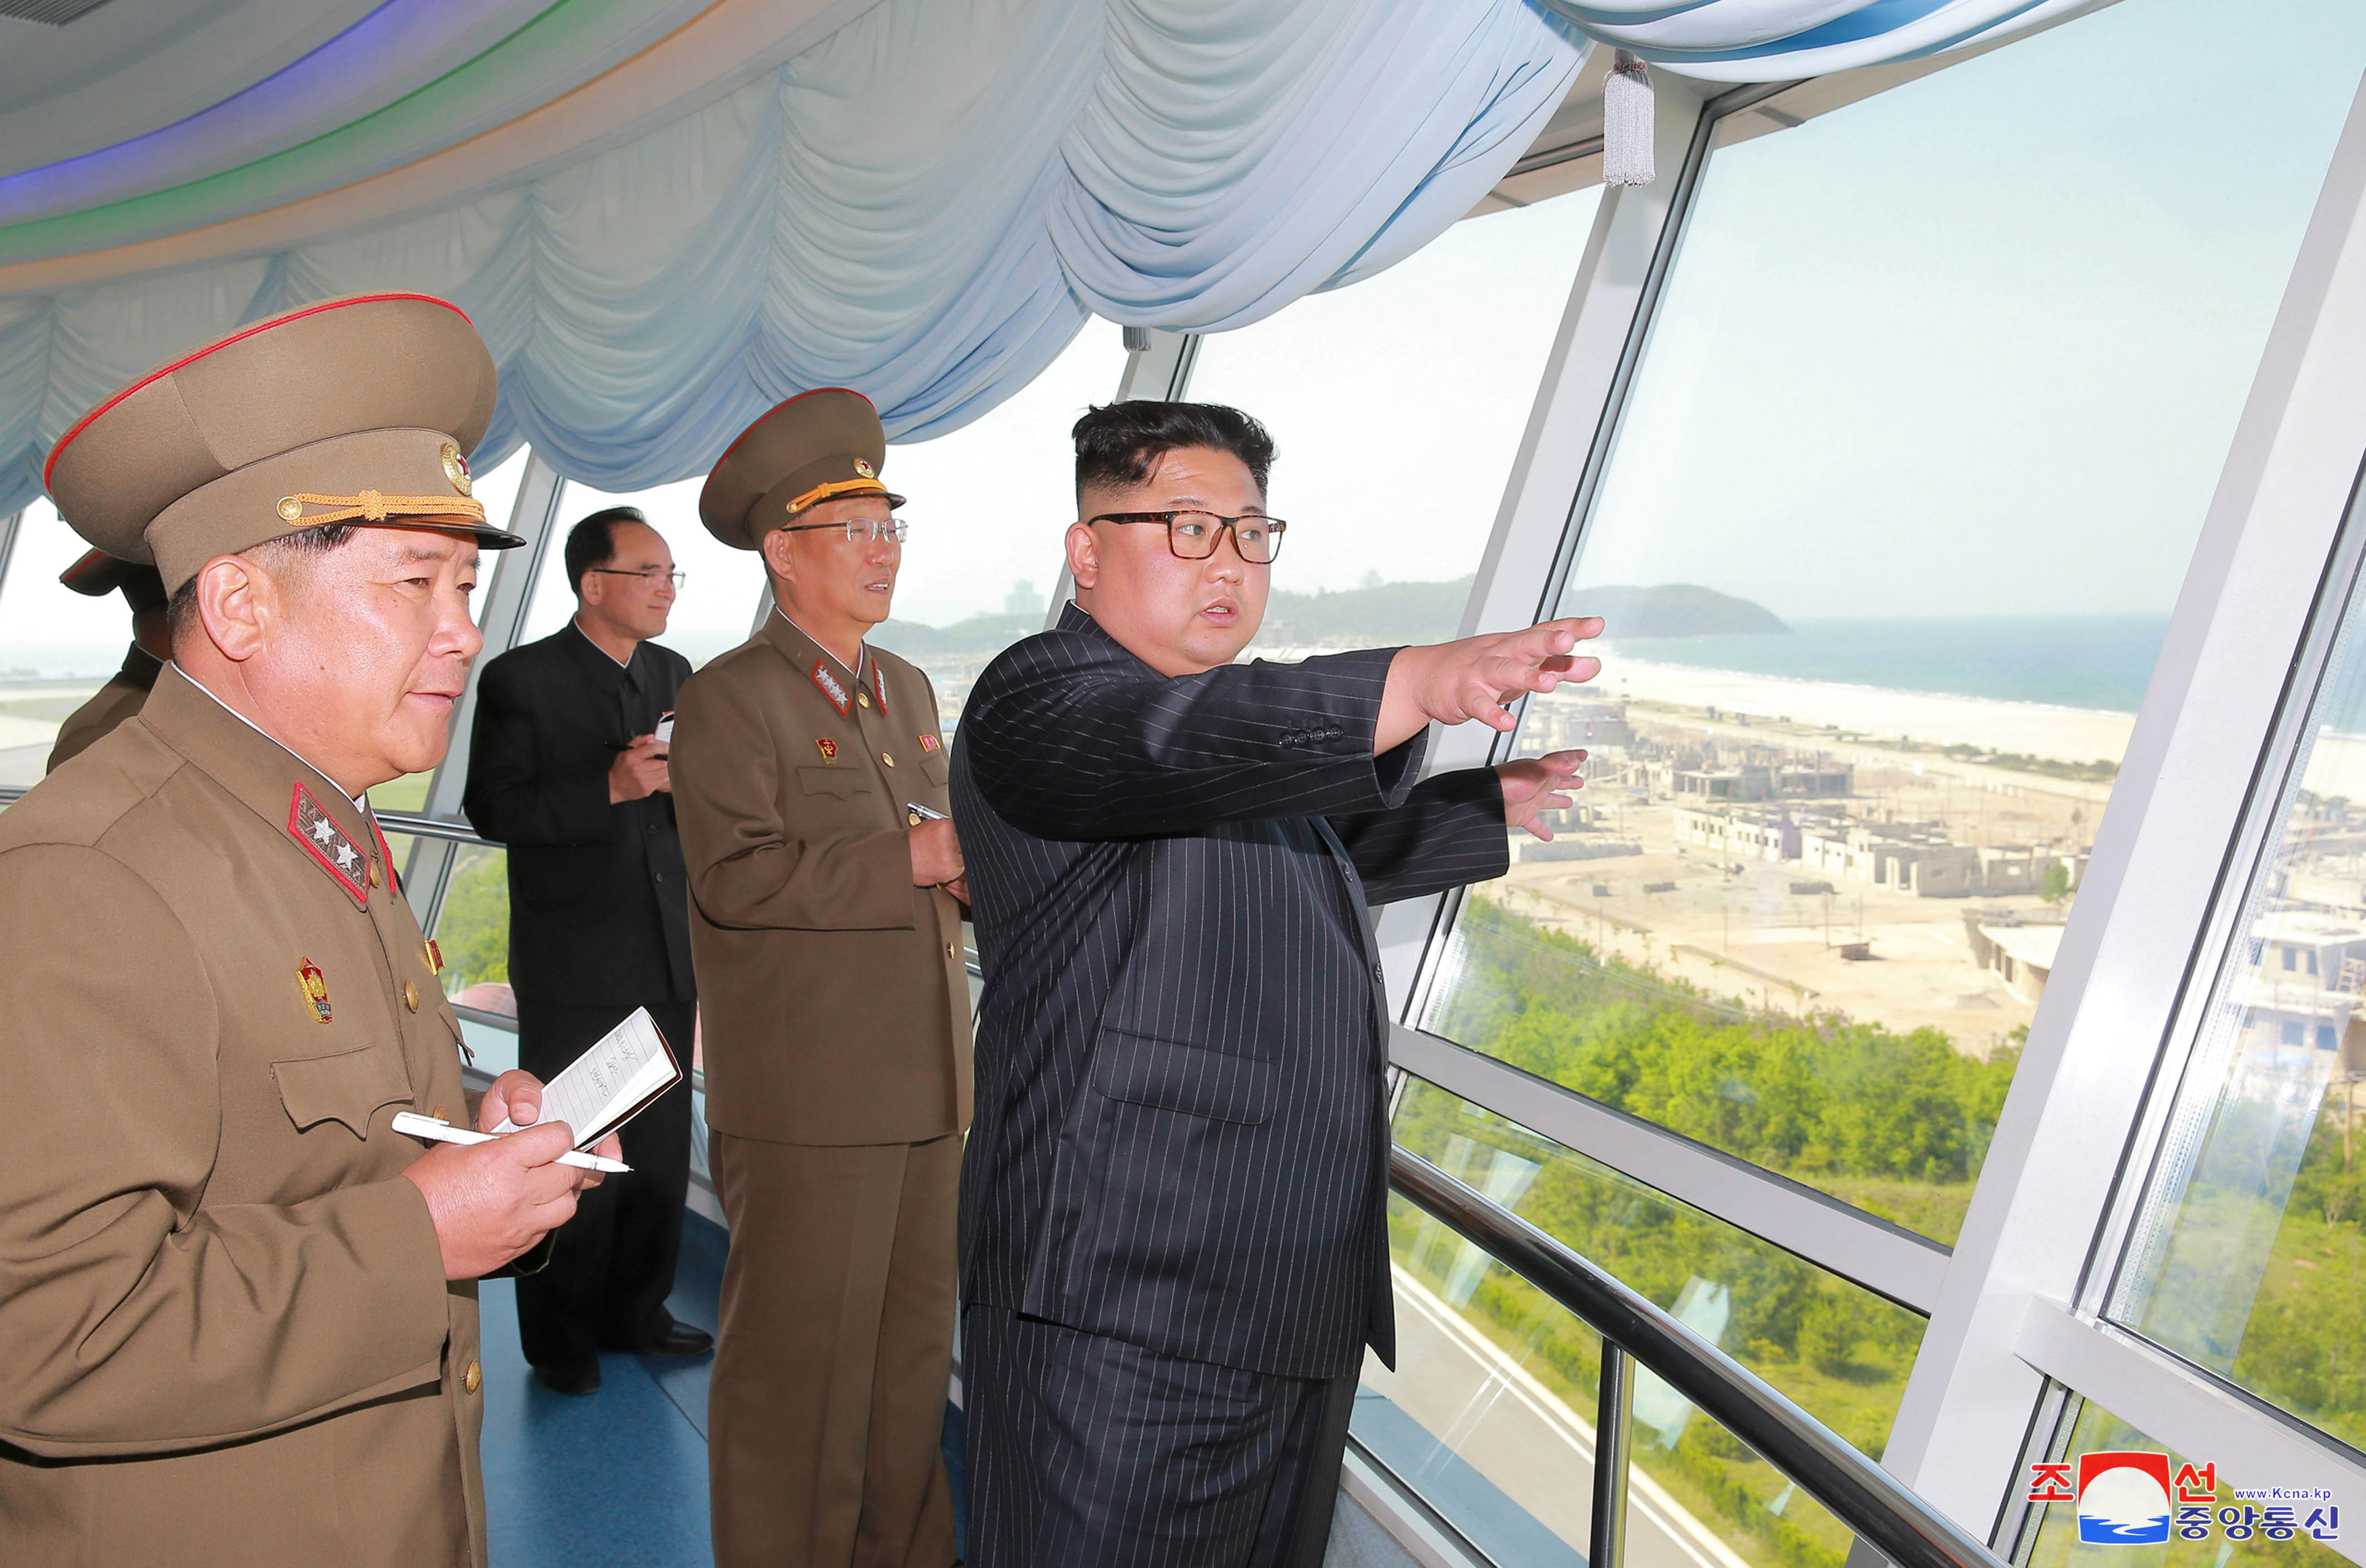 FILE PHOTO - North Korean leader Kim Jong Un inspects the construction site of the Wonsan-Kalma coastal tourist area as Kim Su Gil, 3rd from left, newly appointed director of the General Political Bureau of the Korean People's Army, looks on, in this...